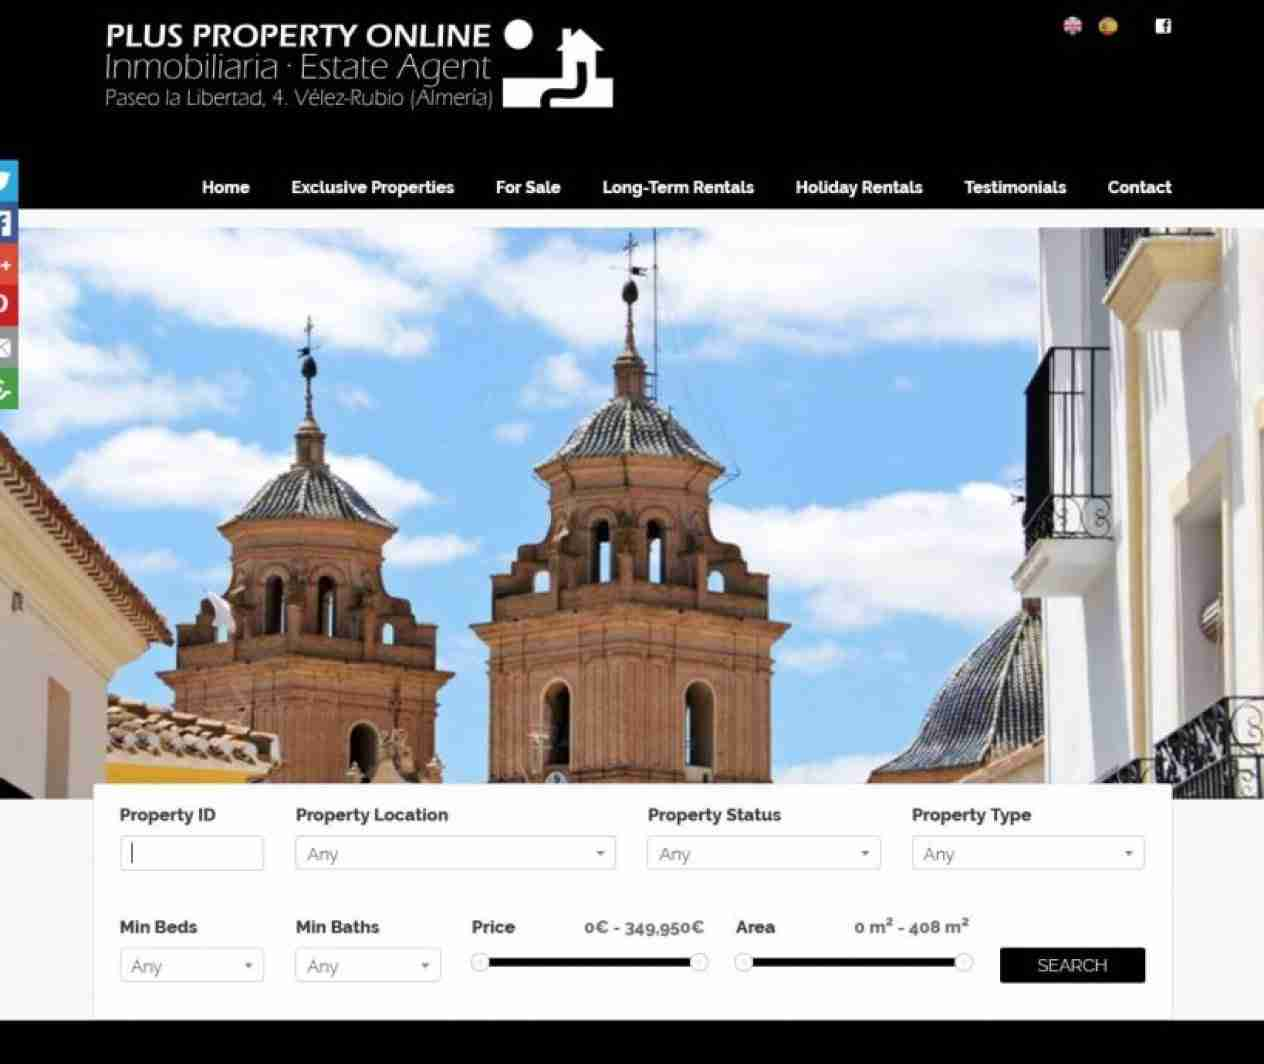 Plus Property Online